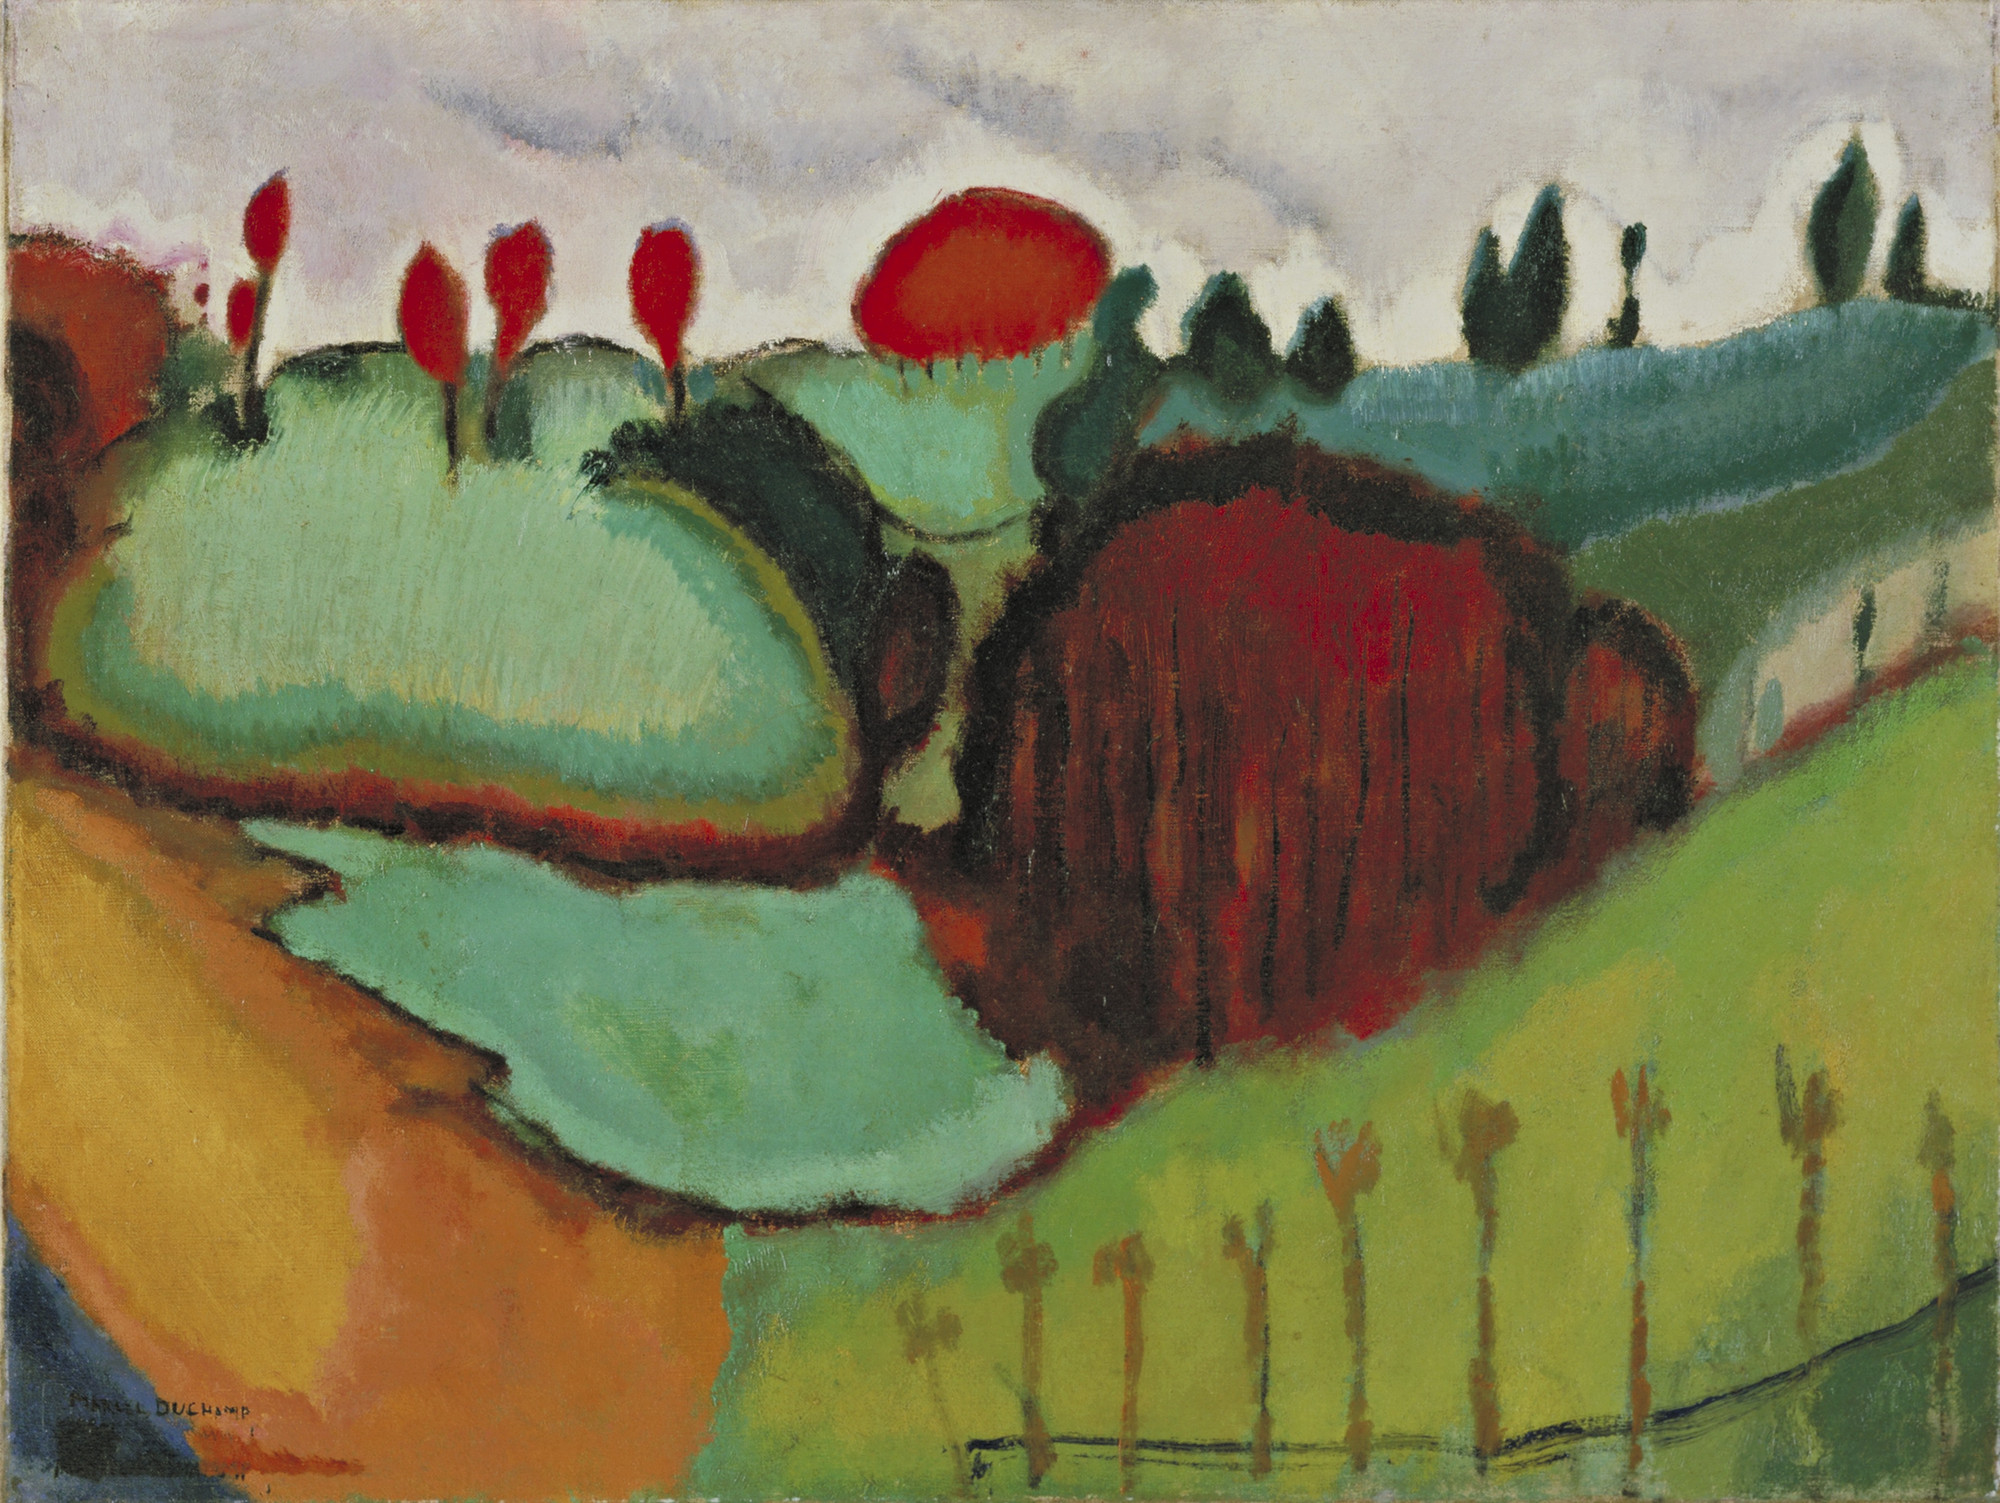 Marcel Duchamp. Landscape. Neuilly, January-February 1911